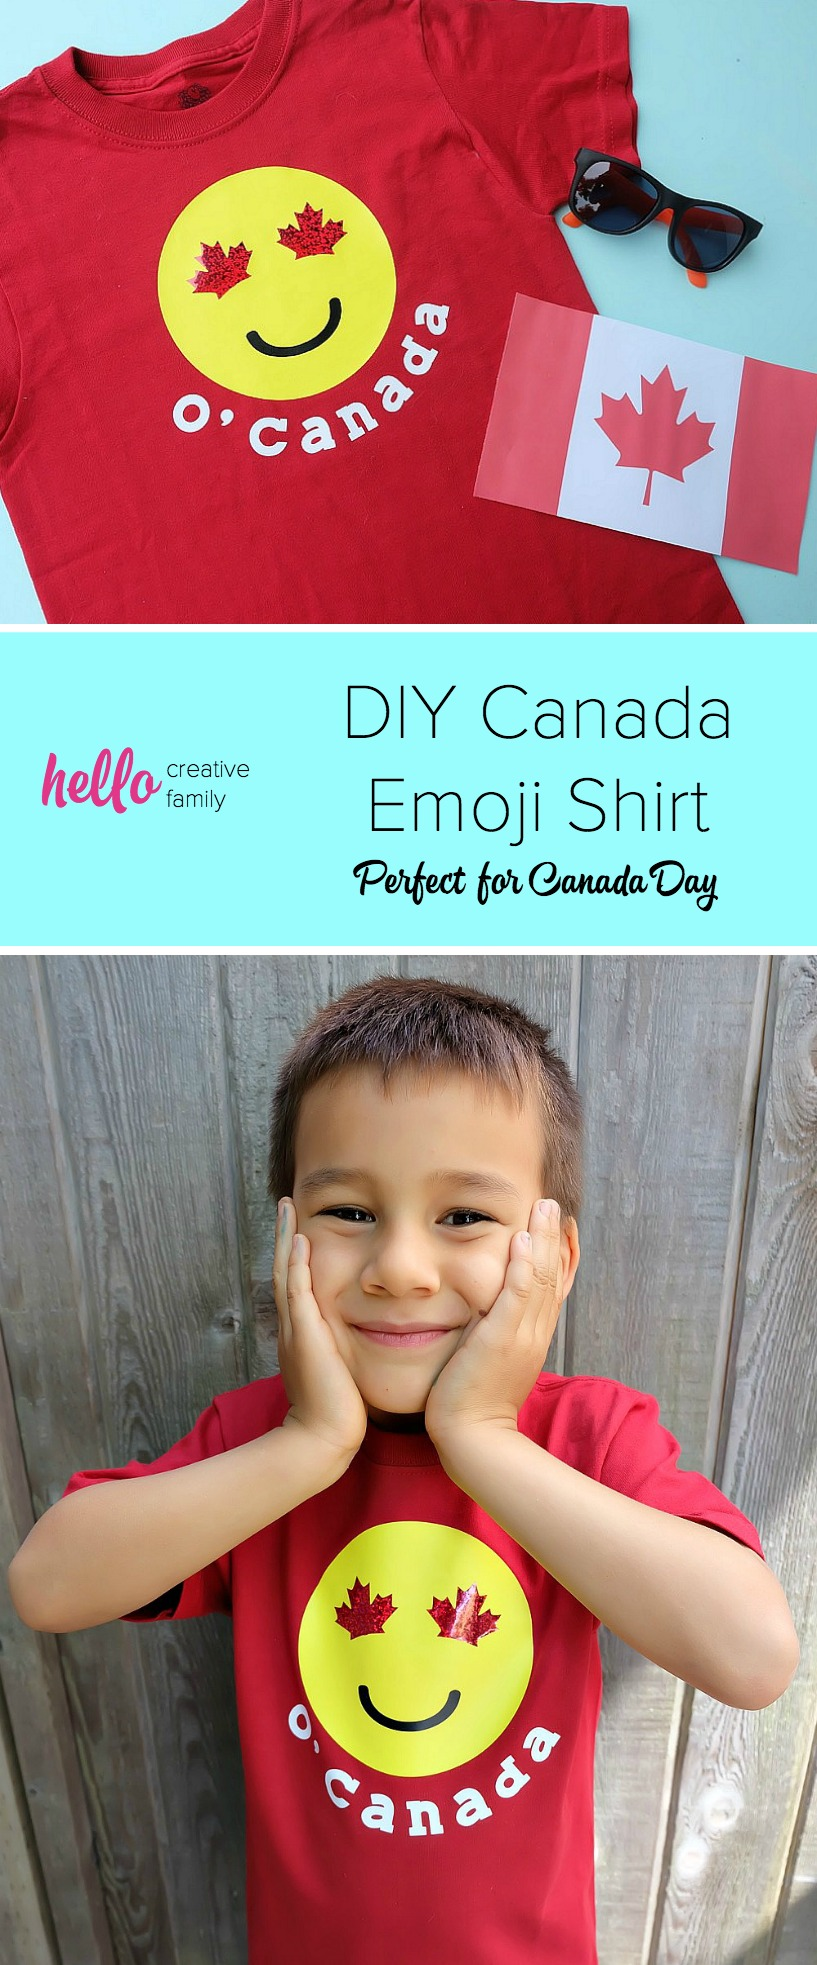 Celebrate Canada Day and your Canadian Patriotism with a super cute shirt! This DIY Canada Emoji Shirt has maple leafs for the eyes and is perfect for emoji loving kids. Includes easy step by step instructions and photos along with the cut file. Perfect for making with your Cricut Explore Air or your Cricut Maker. Get crafting! #CricutMade #emojis #Cricut #CanadaDay #DIY